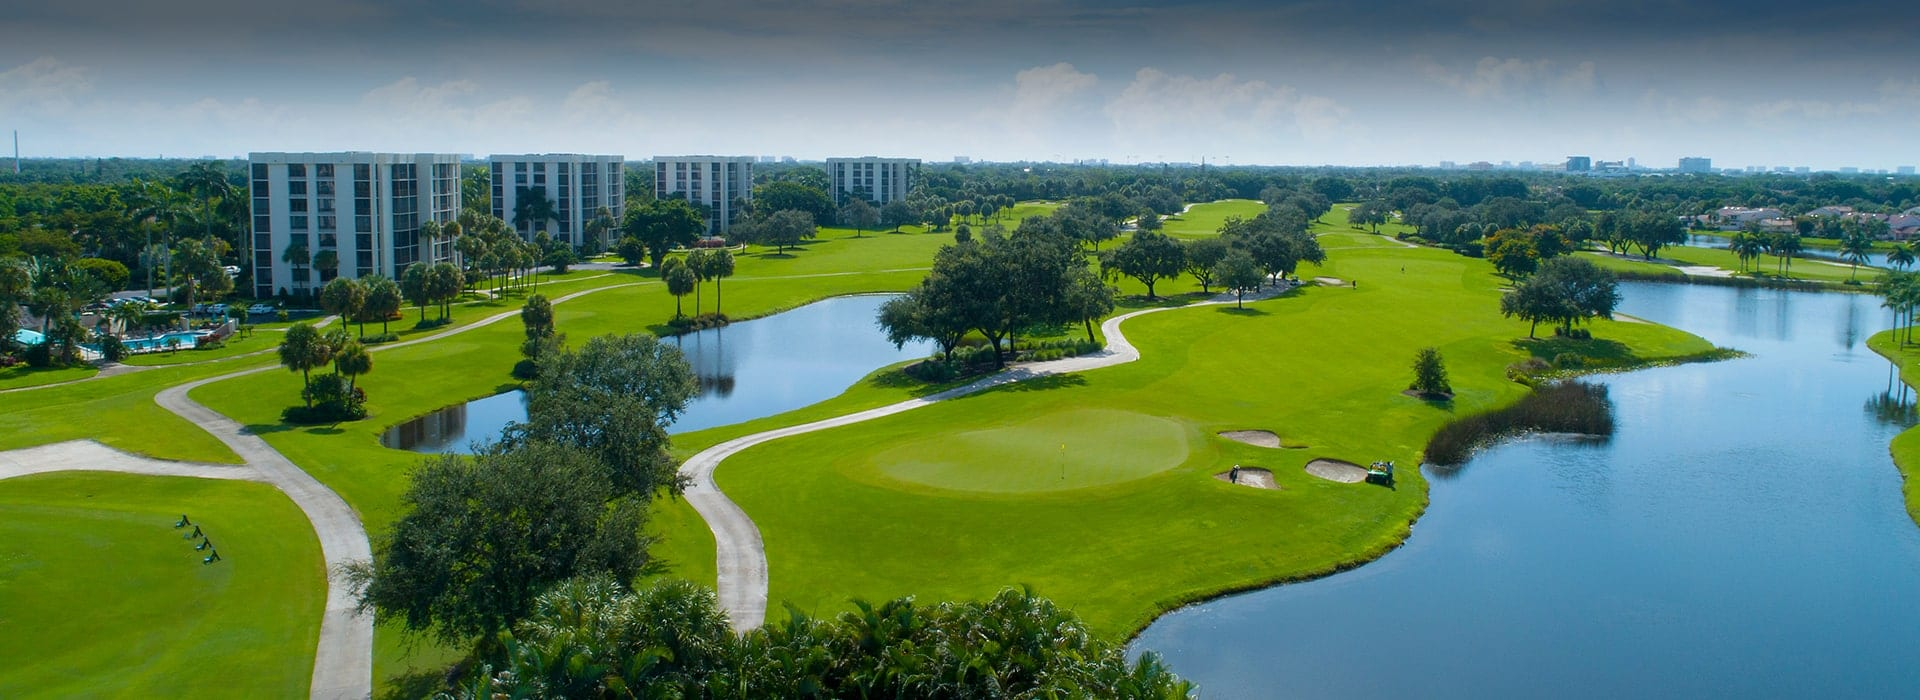 Boca West Willowwood Mid Rise buildings on the golf course